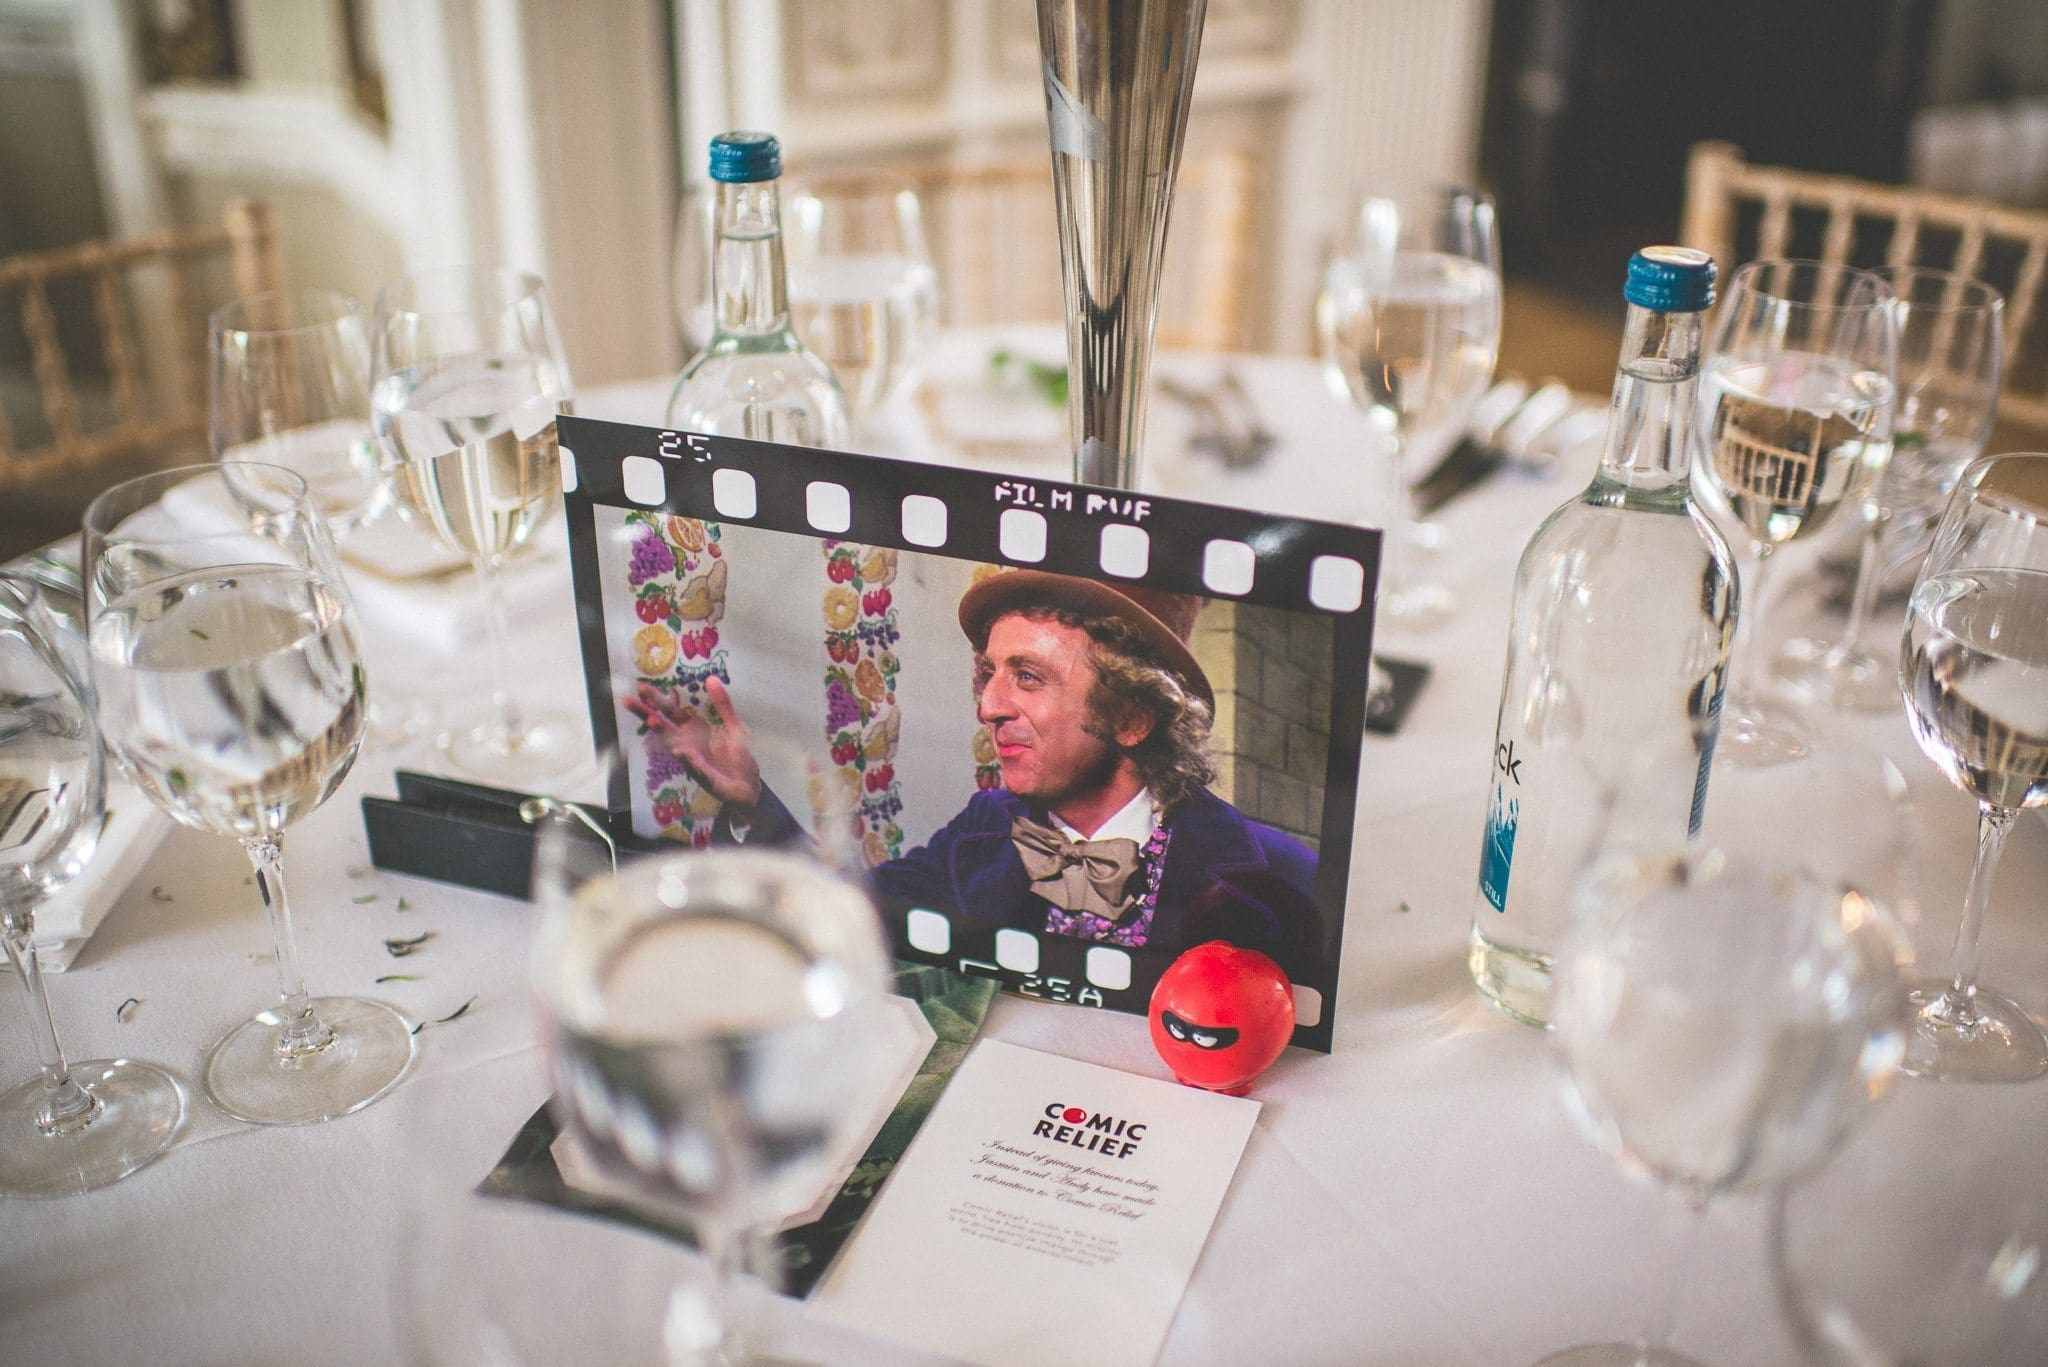 Film-themed table centres and Comic Relief donation card in lieu of giving favours